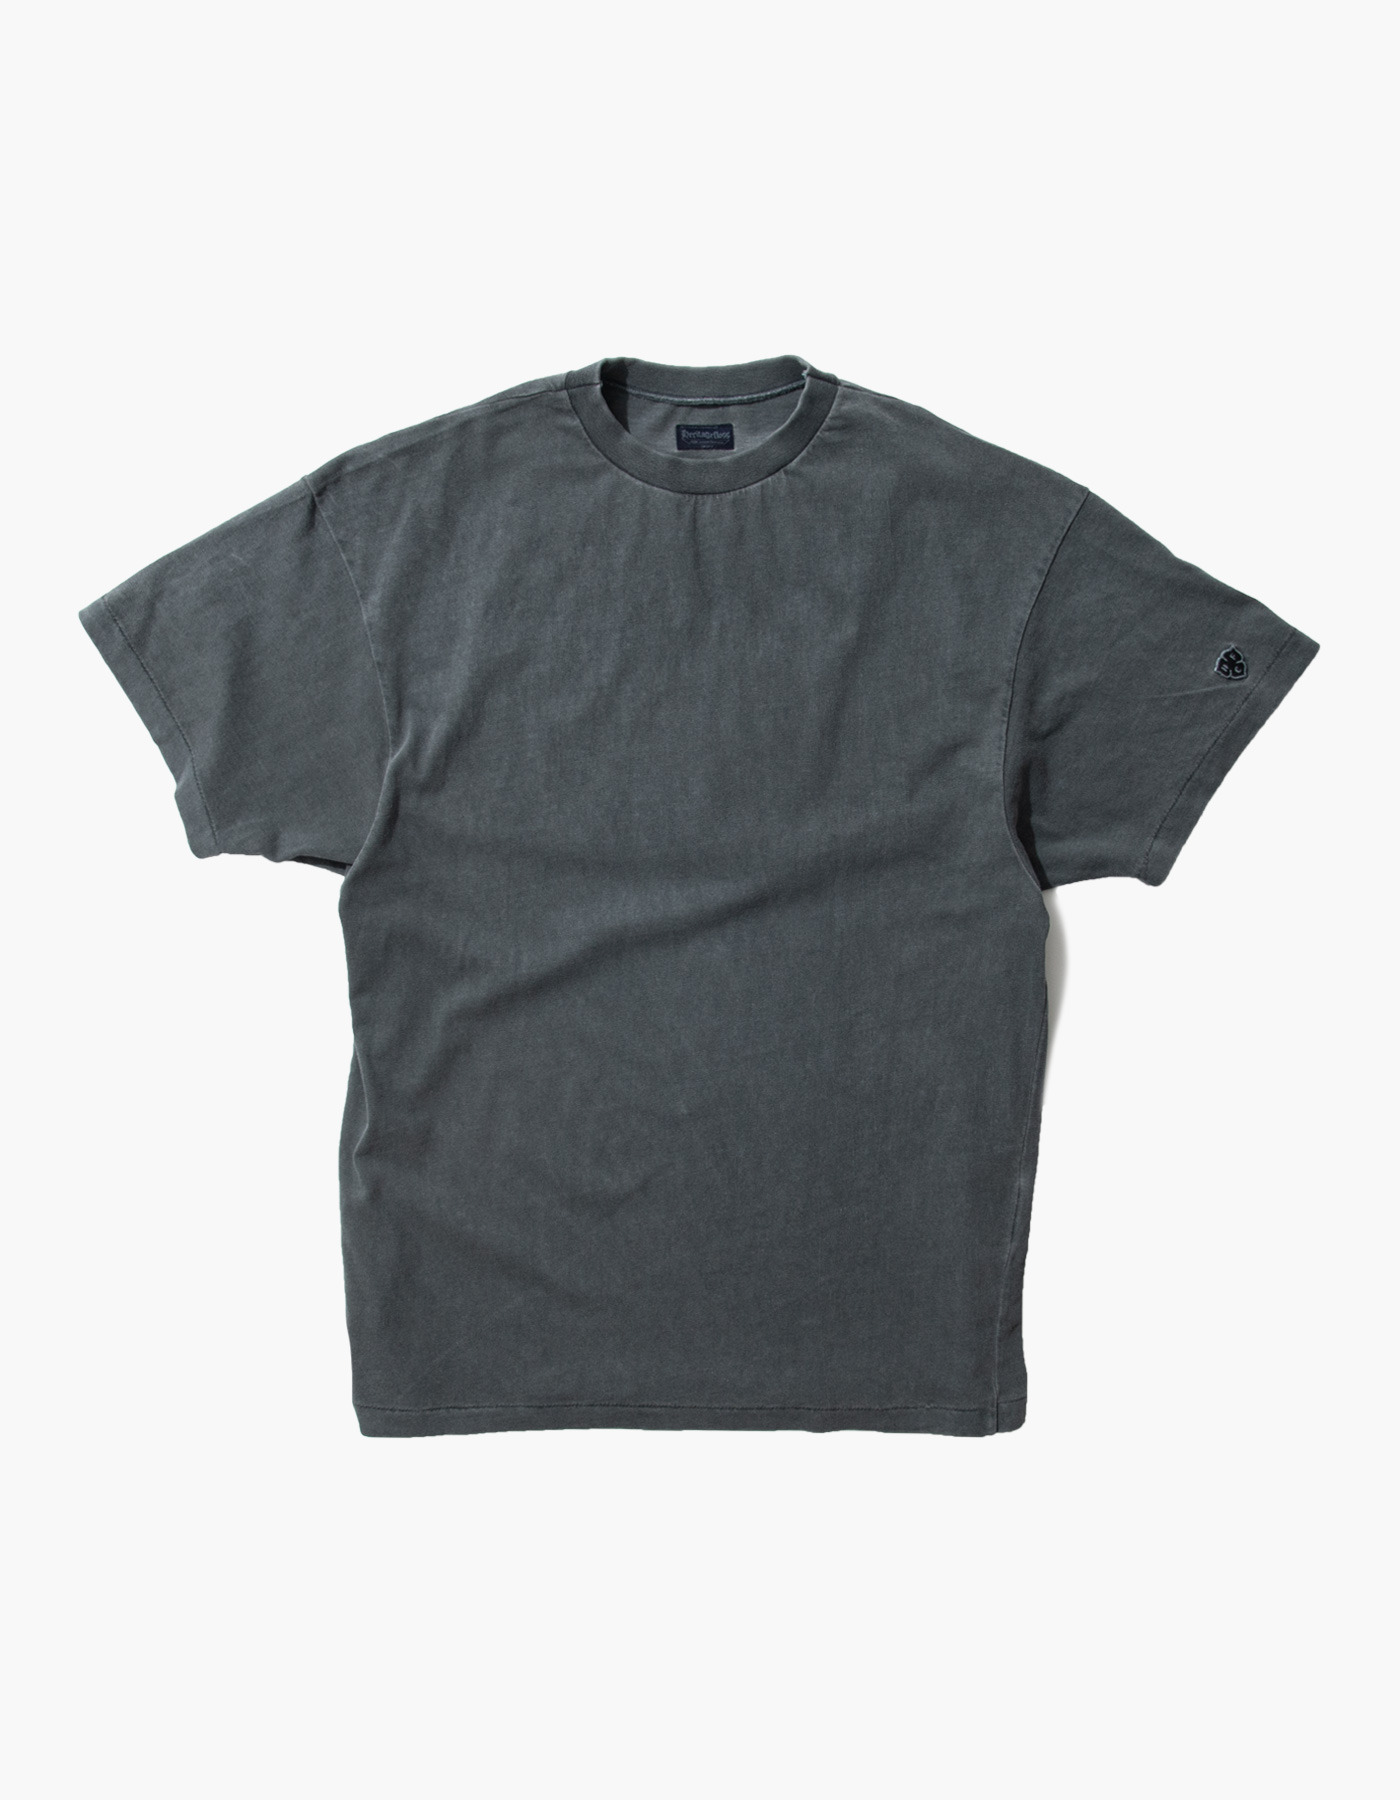 ACS COMPACT YARN T-SHIRTS / CHARCOAL